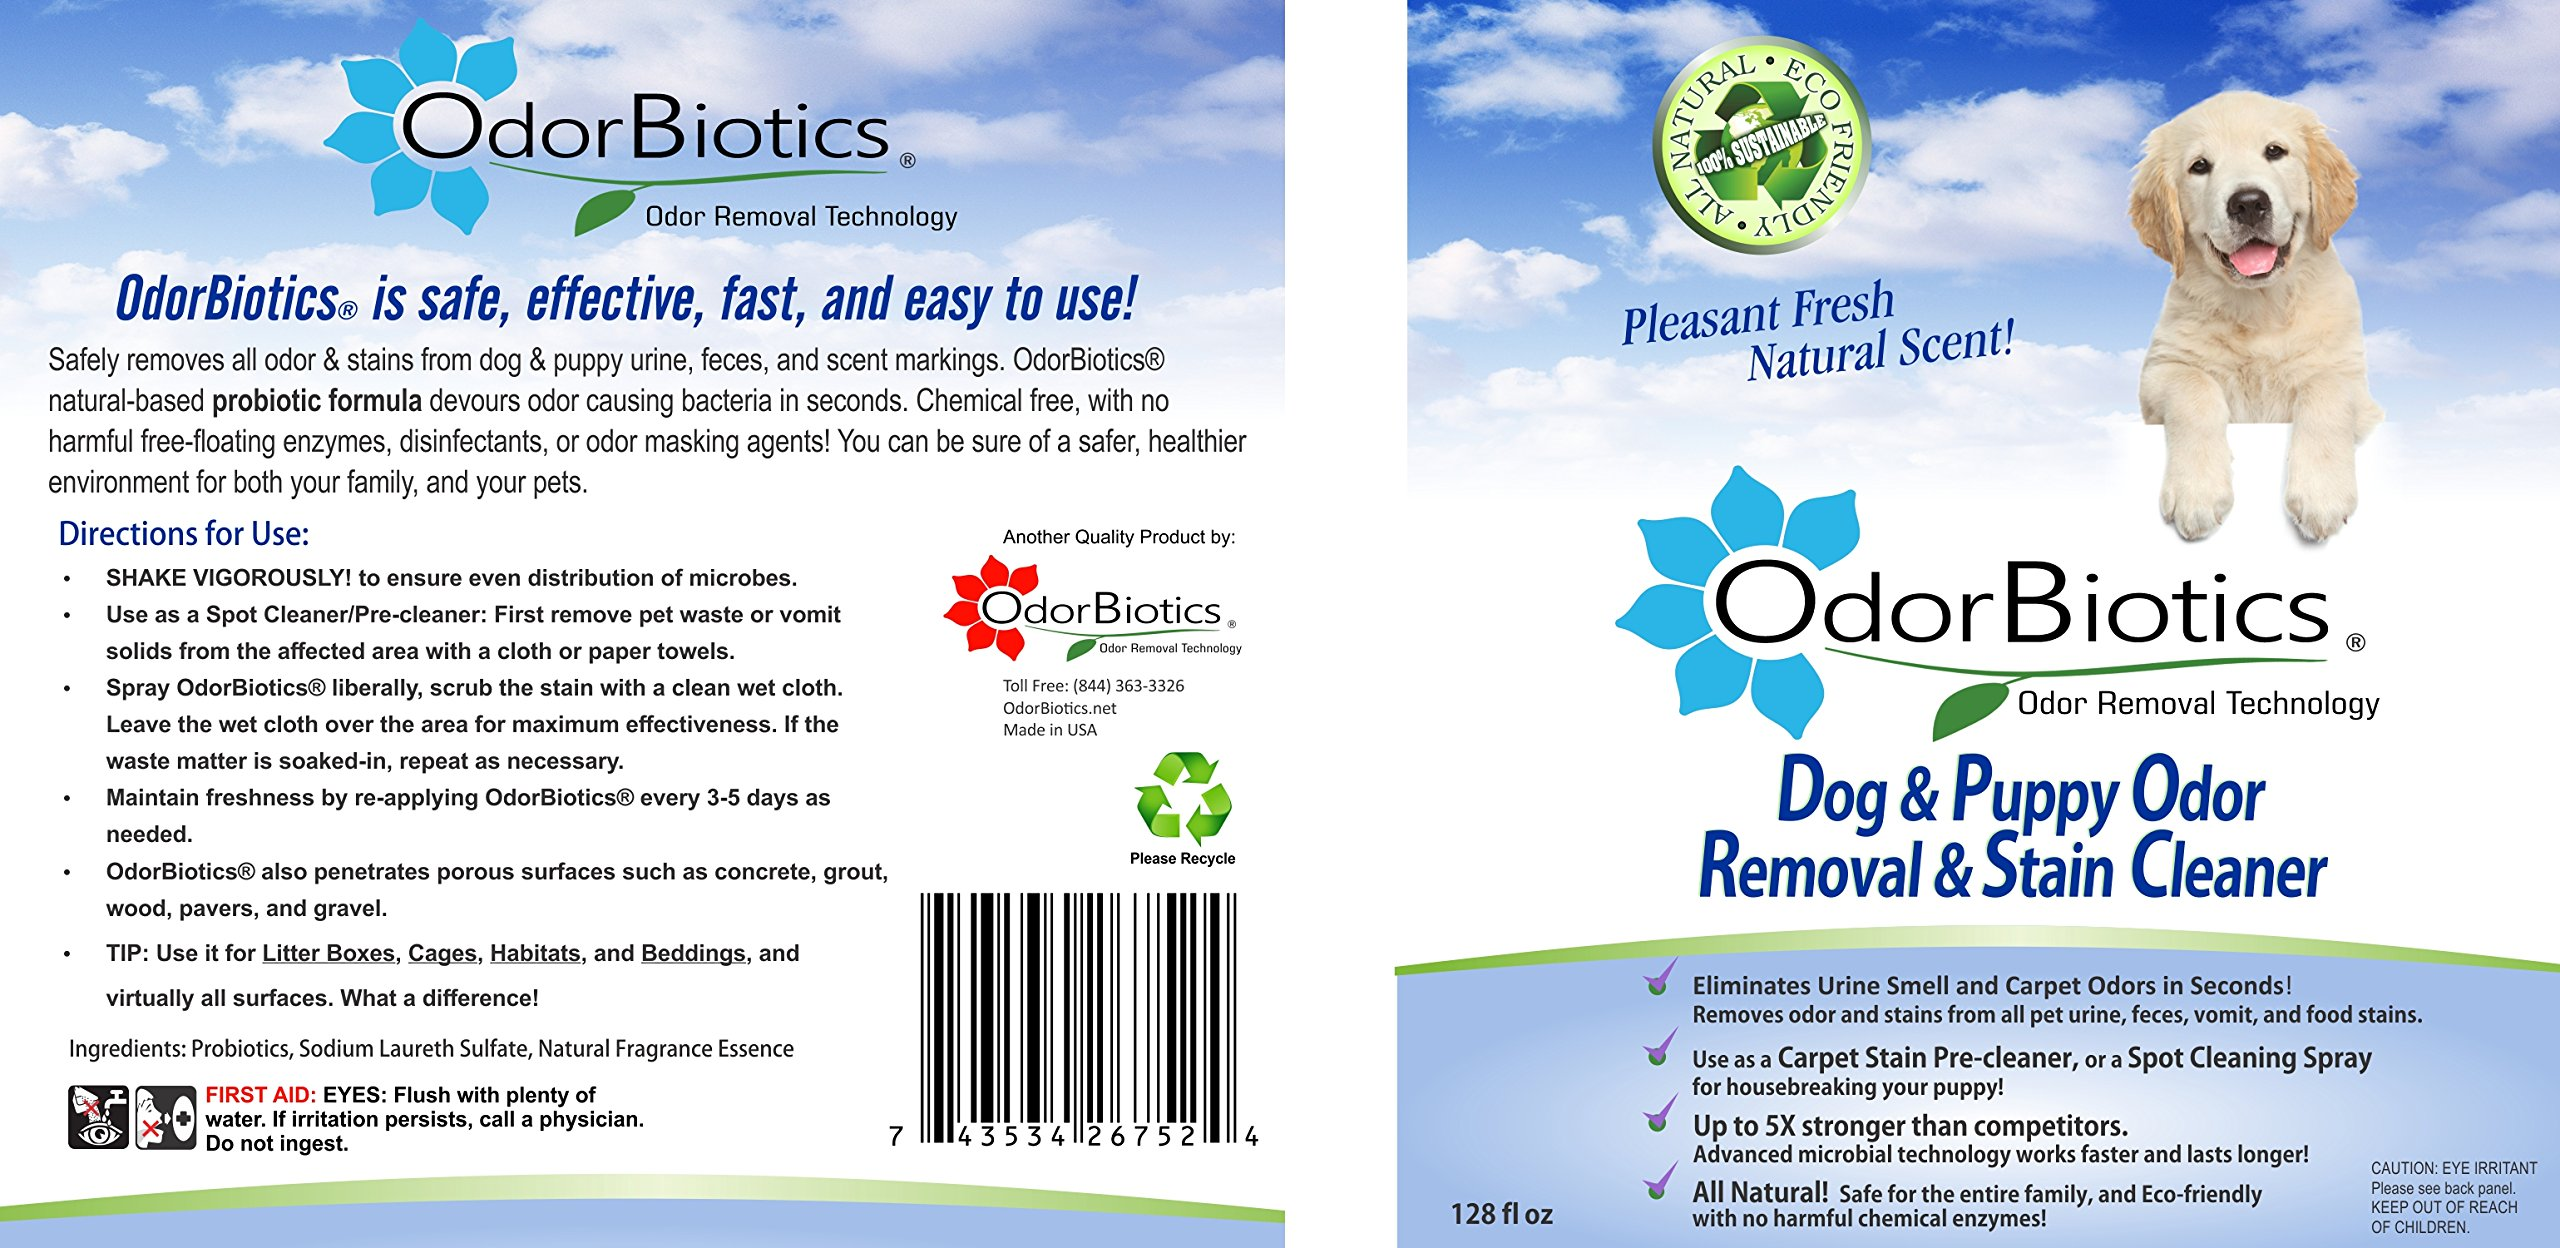 OdorBiotics Pet Stain & Odor Remover for Dog Beds, Playpens, Crates, Carriers, Kennels, Clothes, Puppy Toys, Eliminate Urine Smell on Carpet, Rugs, Hardwood Floors, Sofa Fabric, 128 oz Economy Size by OdorBiotics (Image #3)